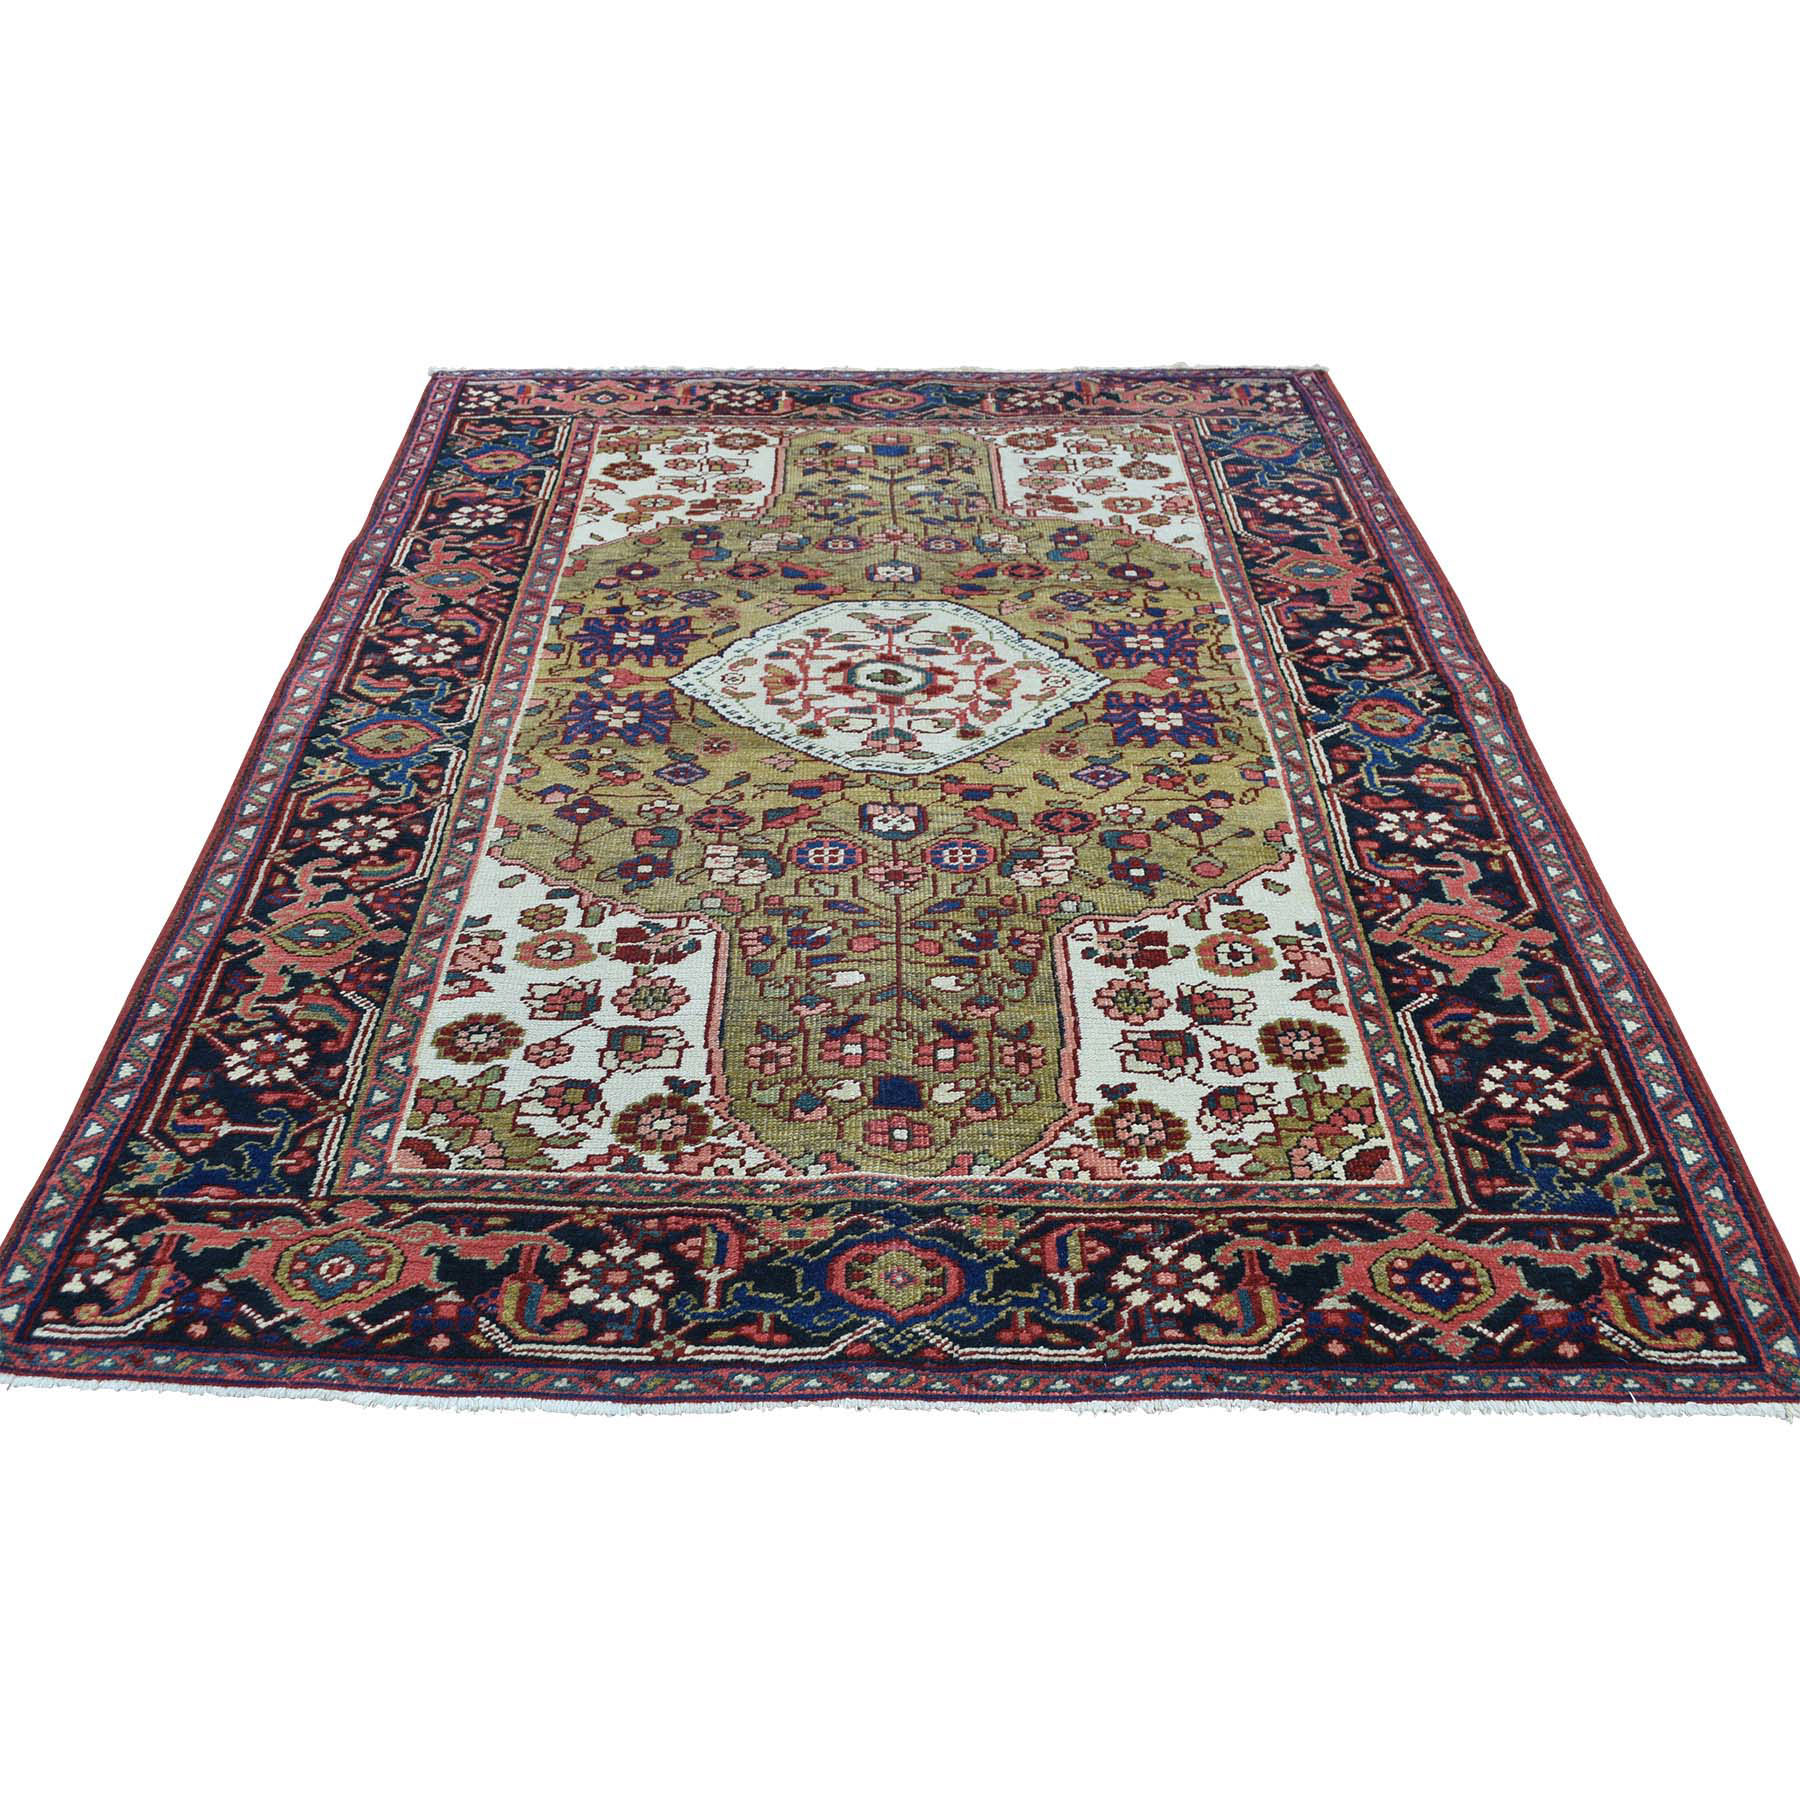 "4'6""X6'4"" Hand-Knotted Antique Persian Heriz Mint Cond Oriental Rug moacddea"